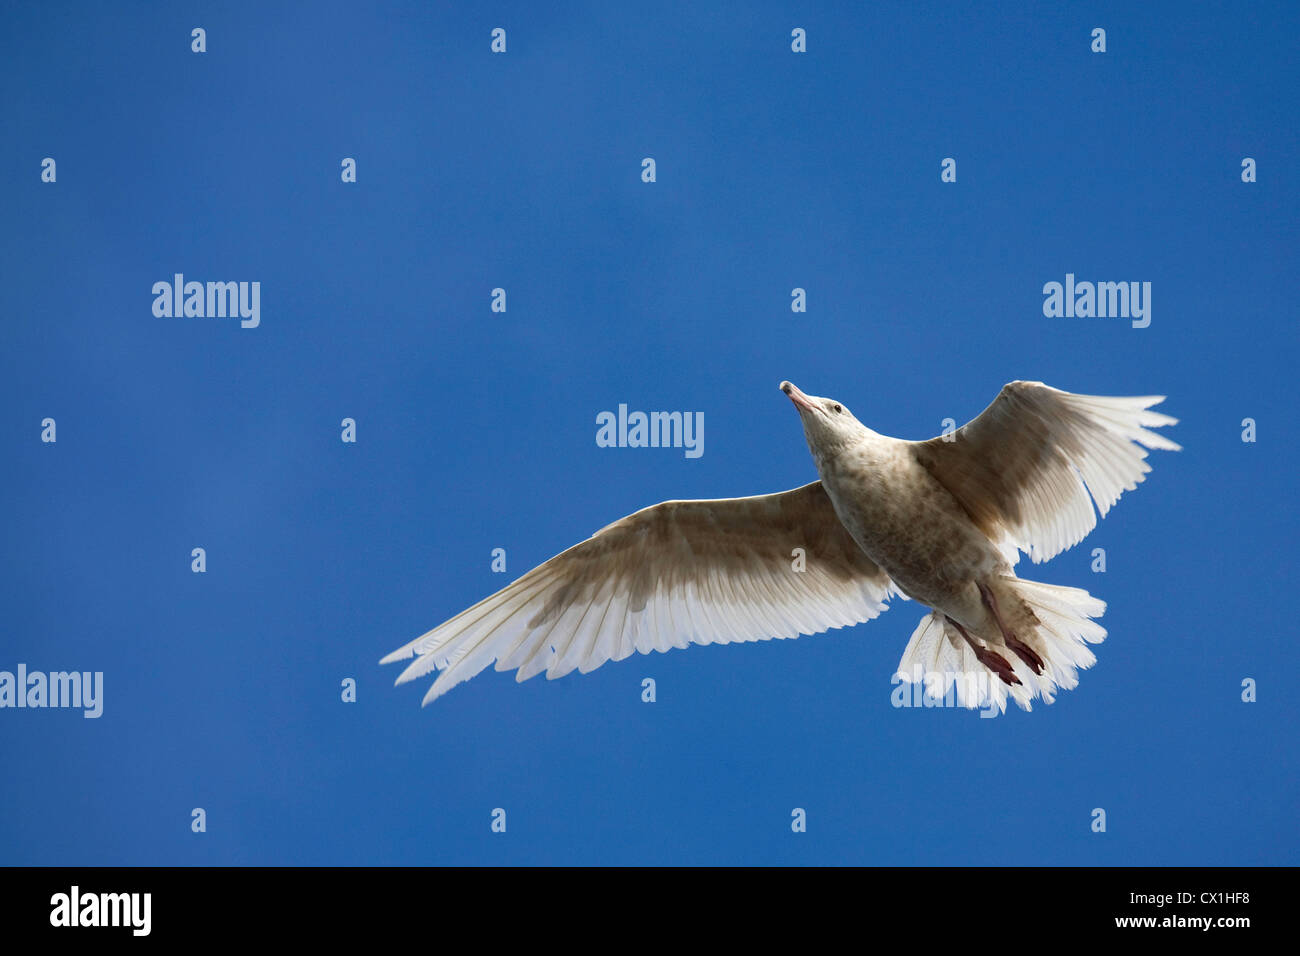 Glaucous gull (Larus hyperboreus) in flight, Svalbard, Spitsbergen, Norway - Stock Image